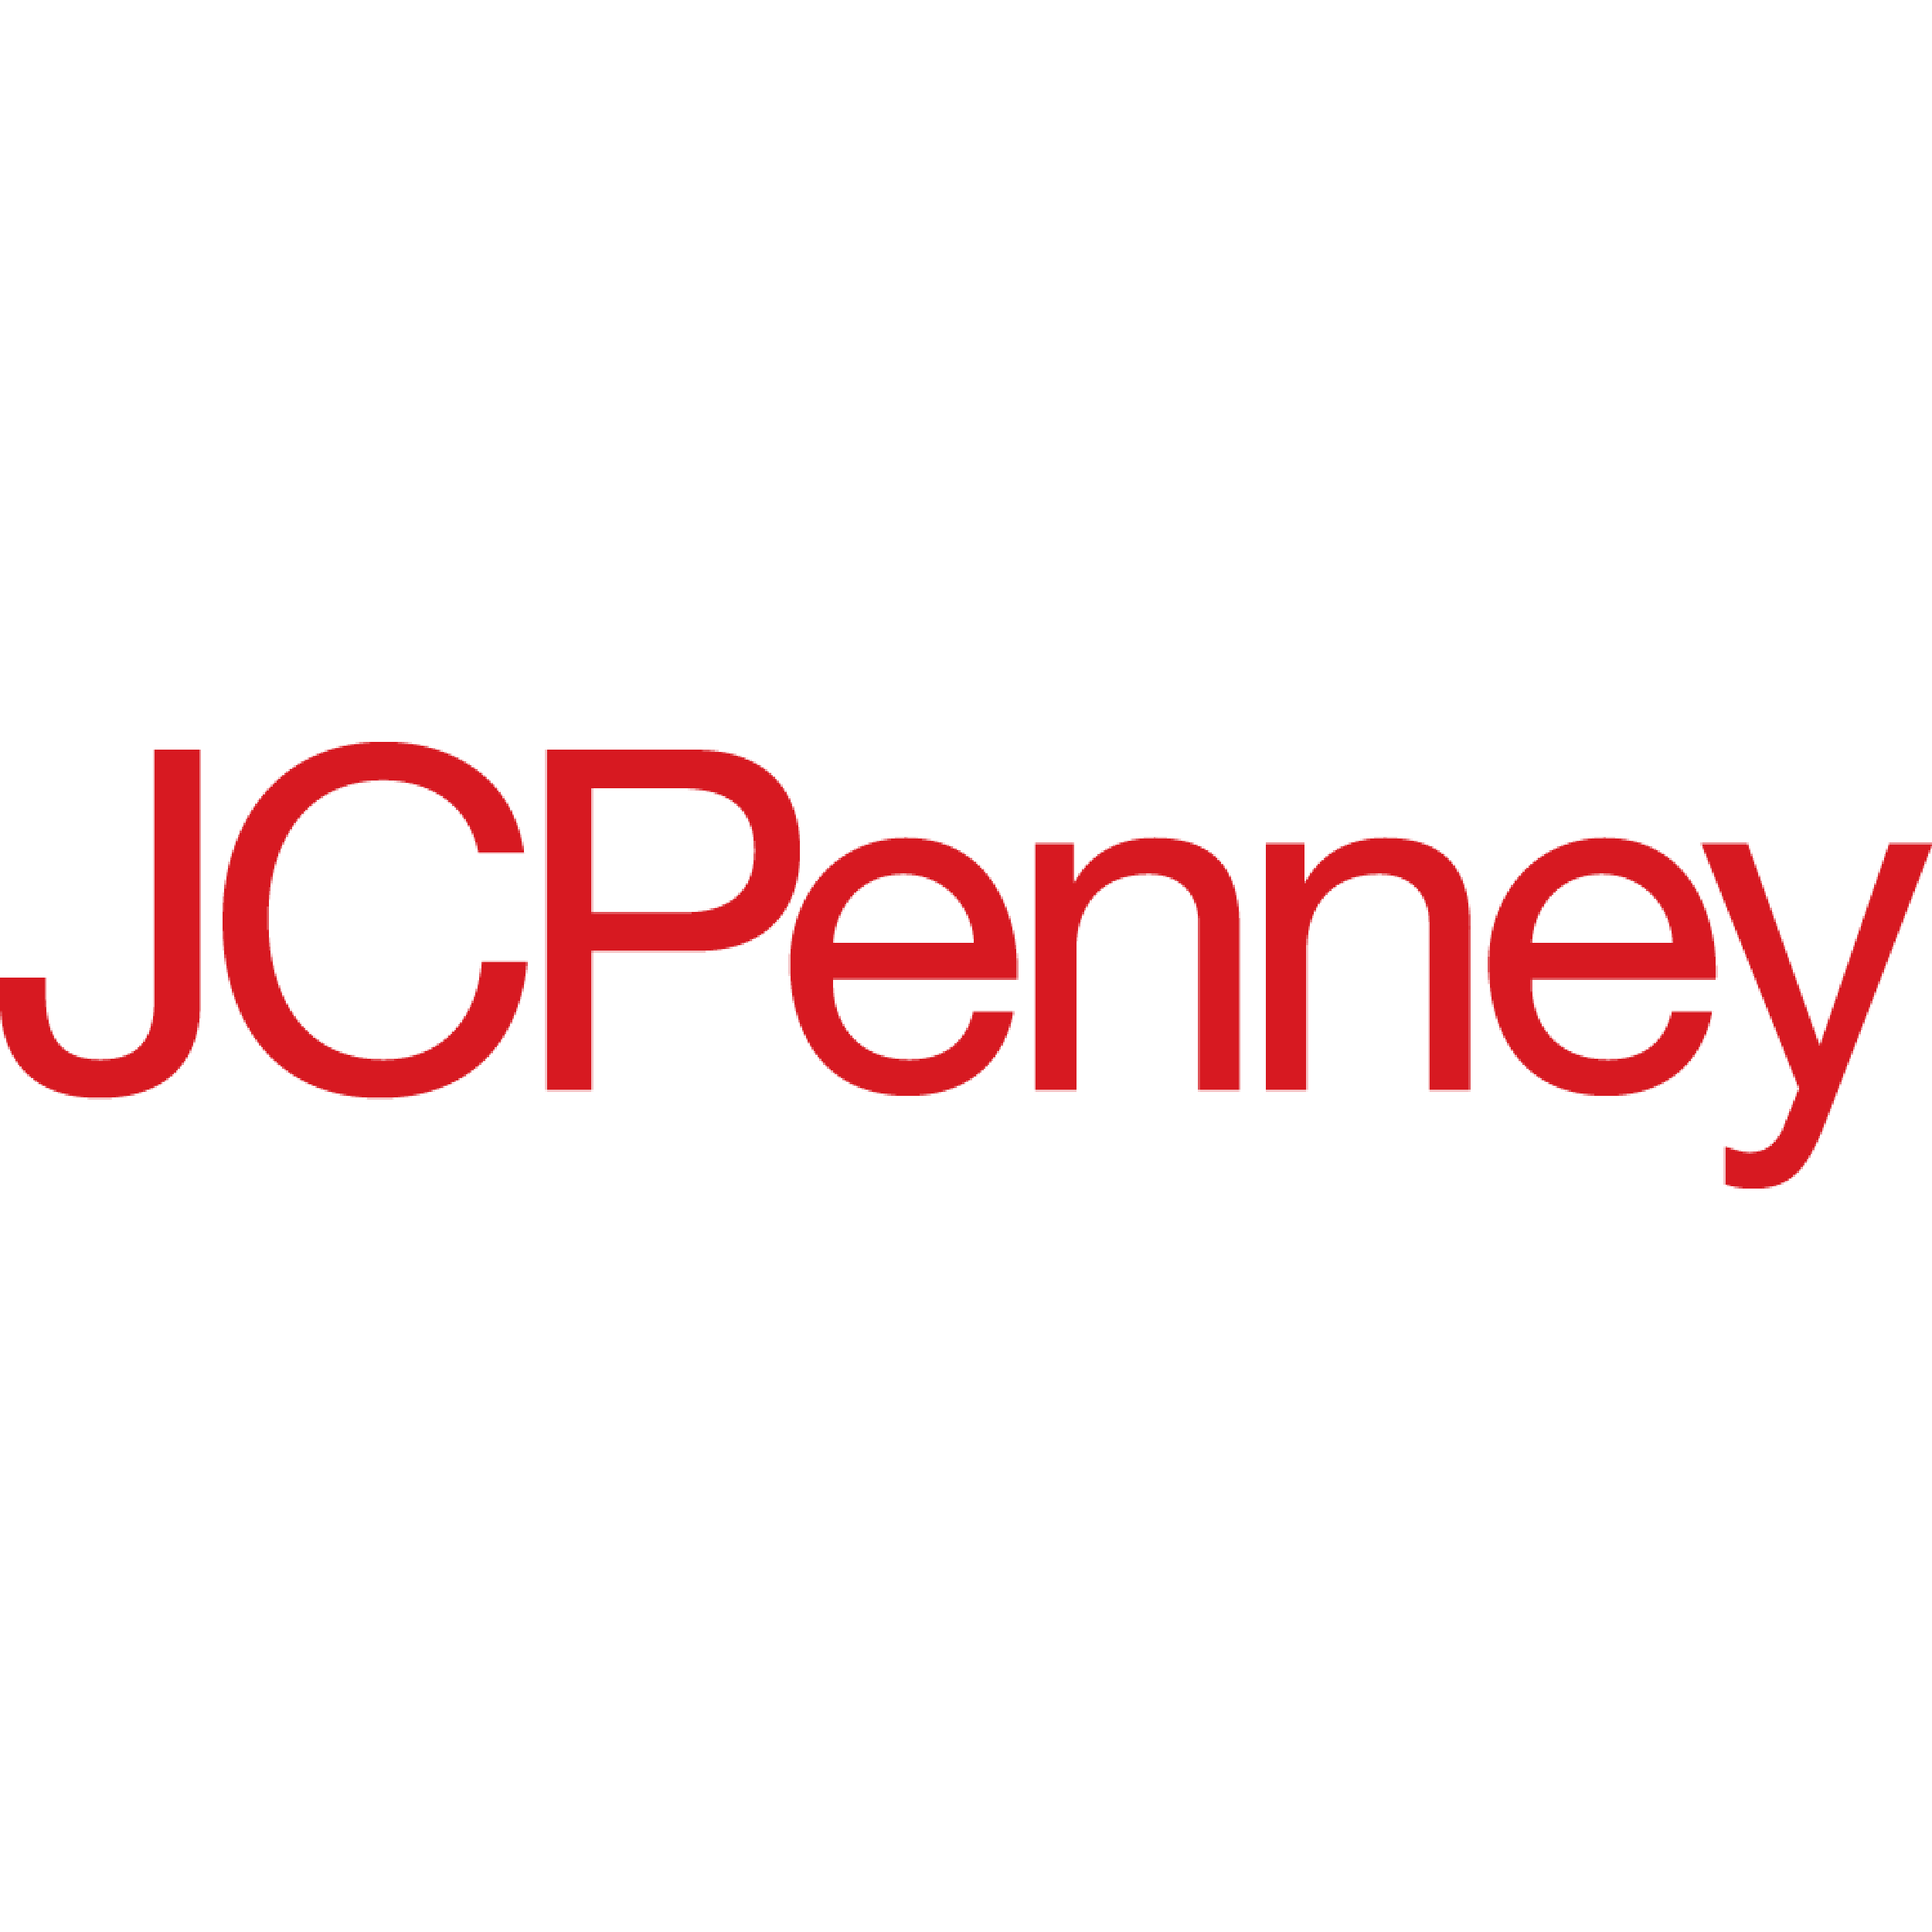 JCPenney - Concord, NC - Department Stores